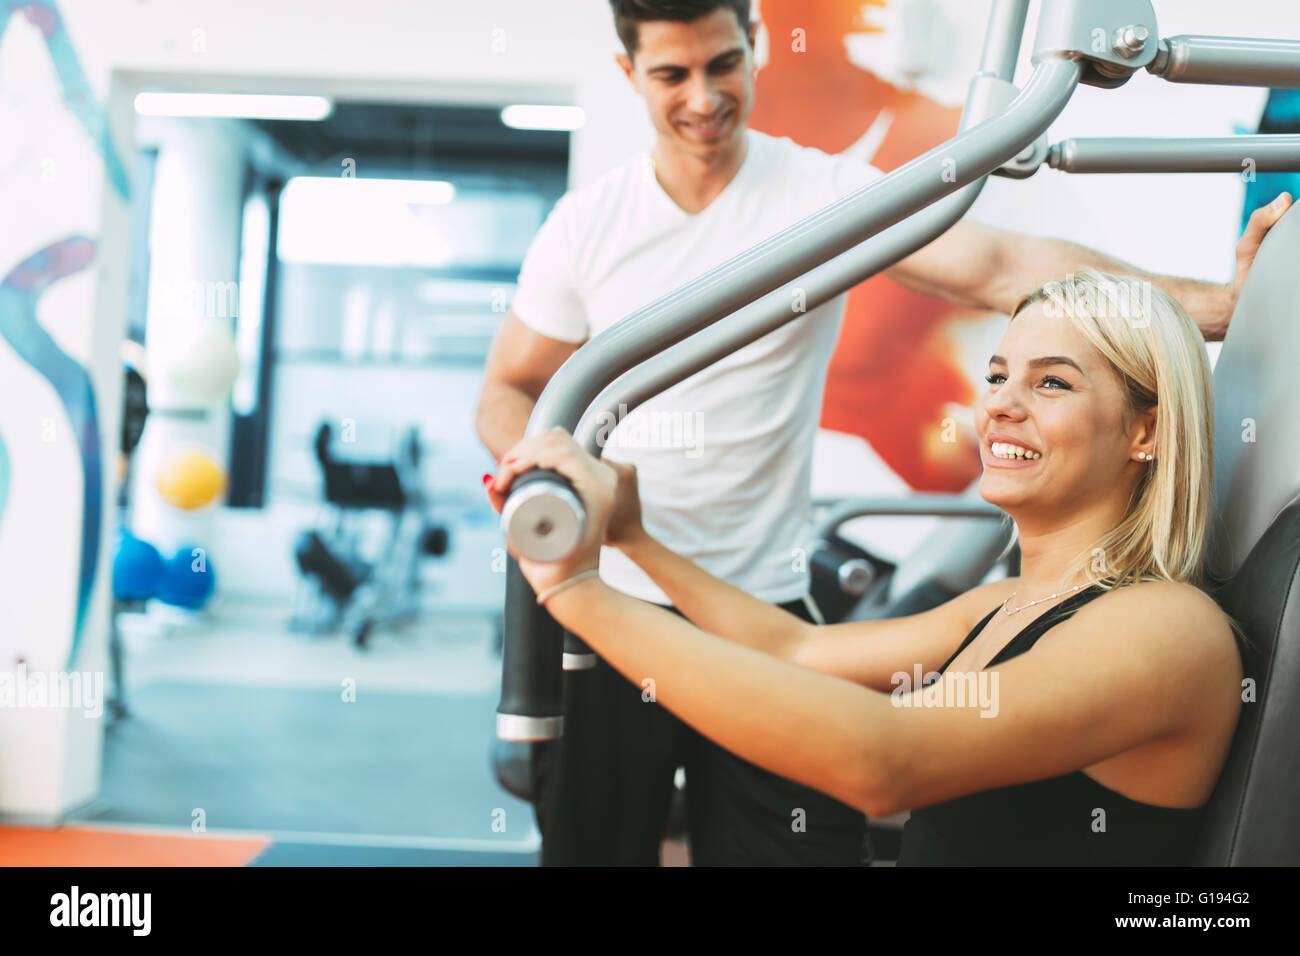 Beautiful woman exercising in gym with some help by personal trainer Stock Photo